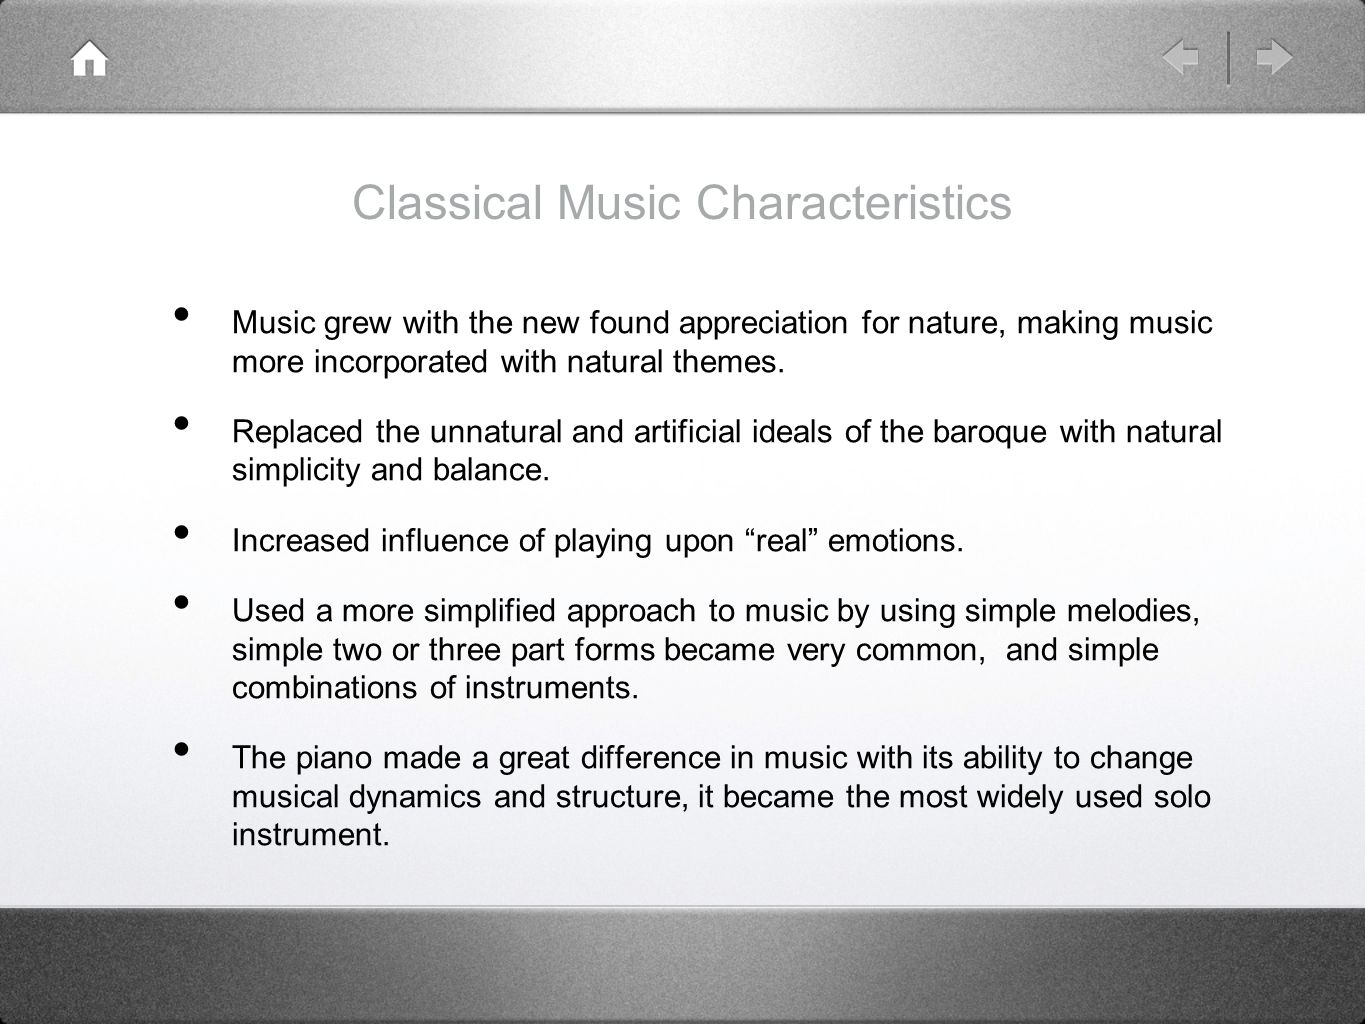 Influence of Baroque Music to Classical Music